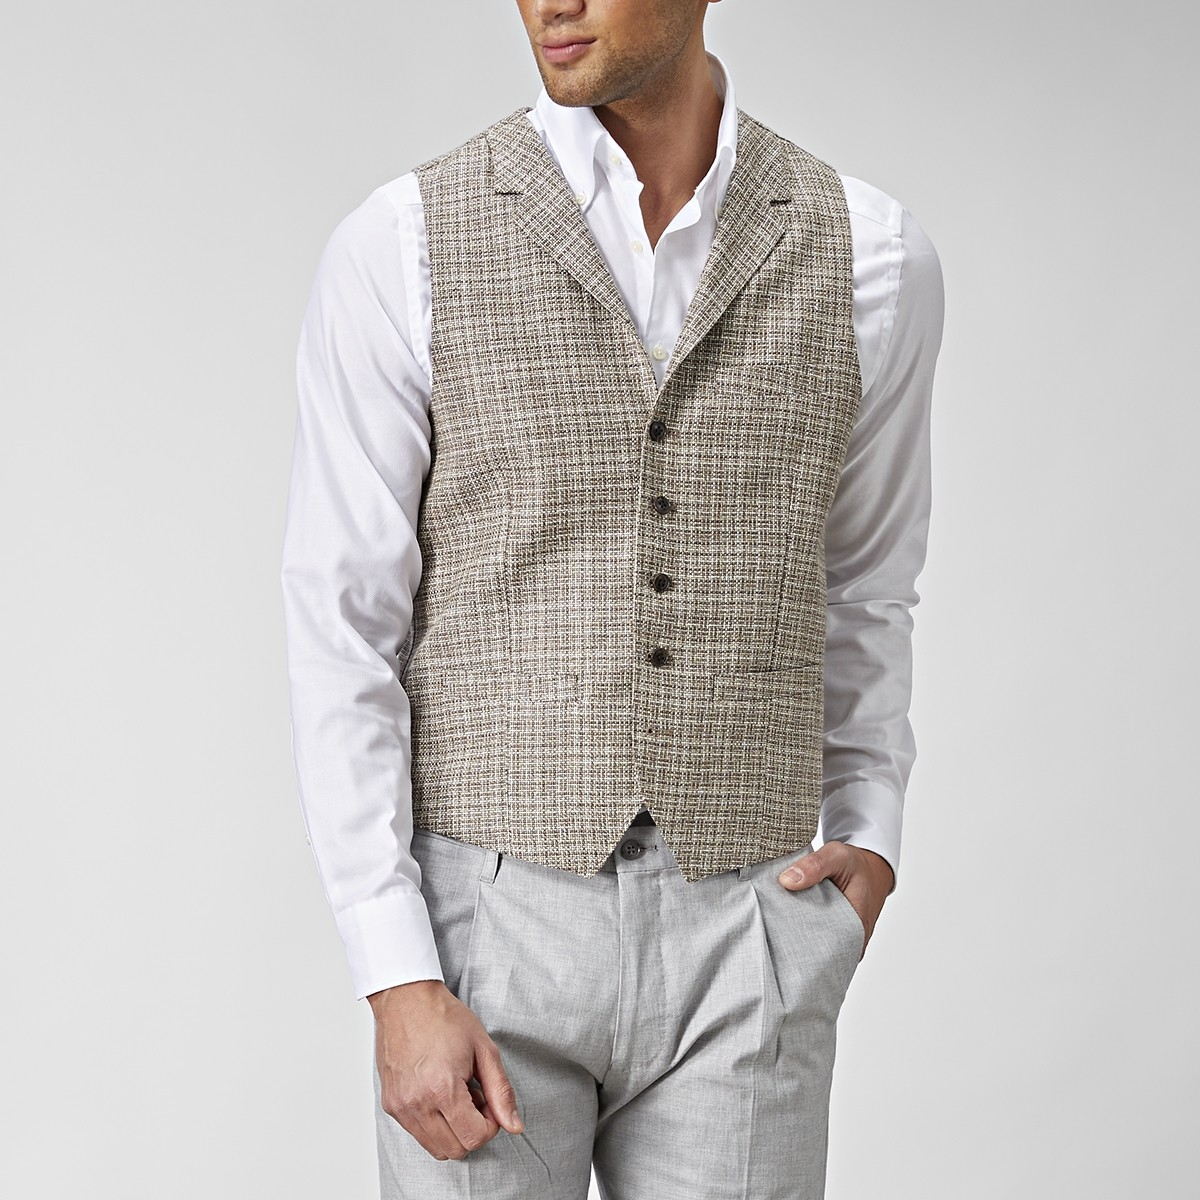 Stafford Väst Beige | The Tailoring Club | Brothers.se